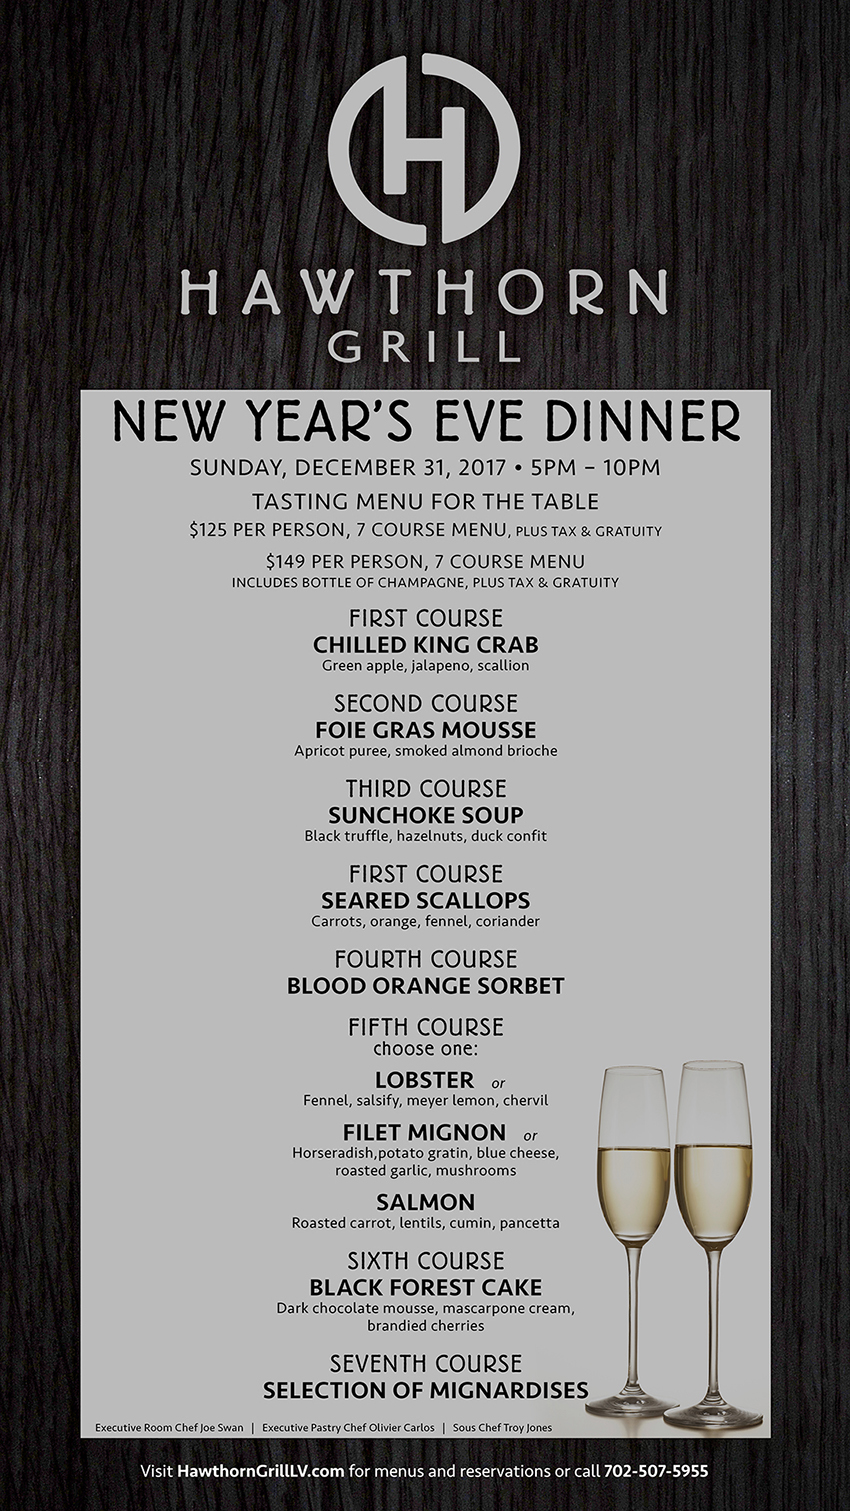 new years eve dinner at hawthorn grill